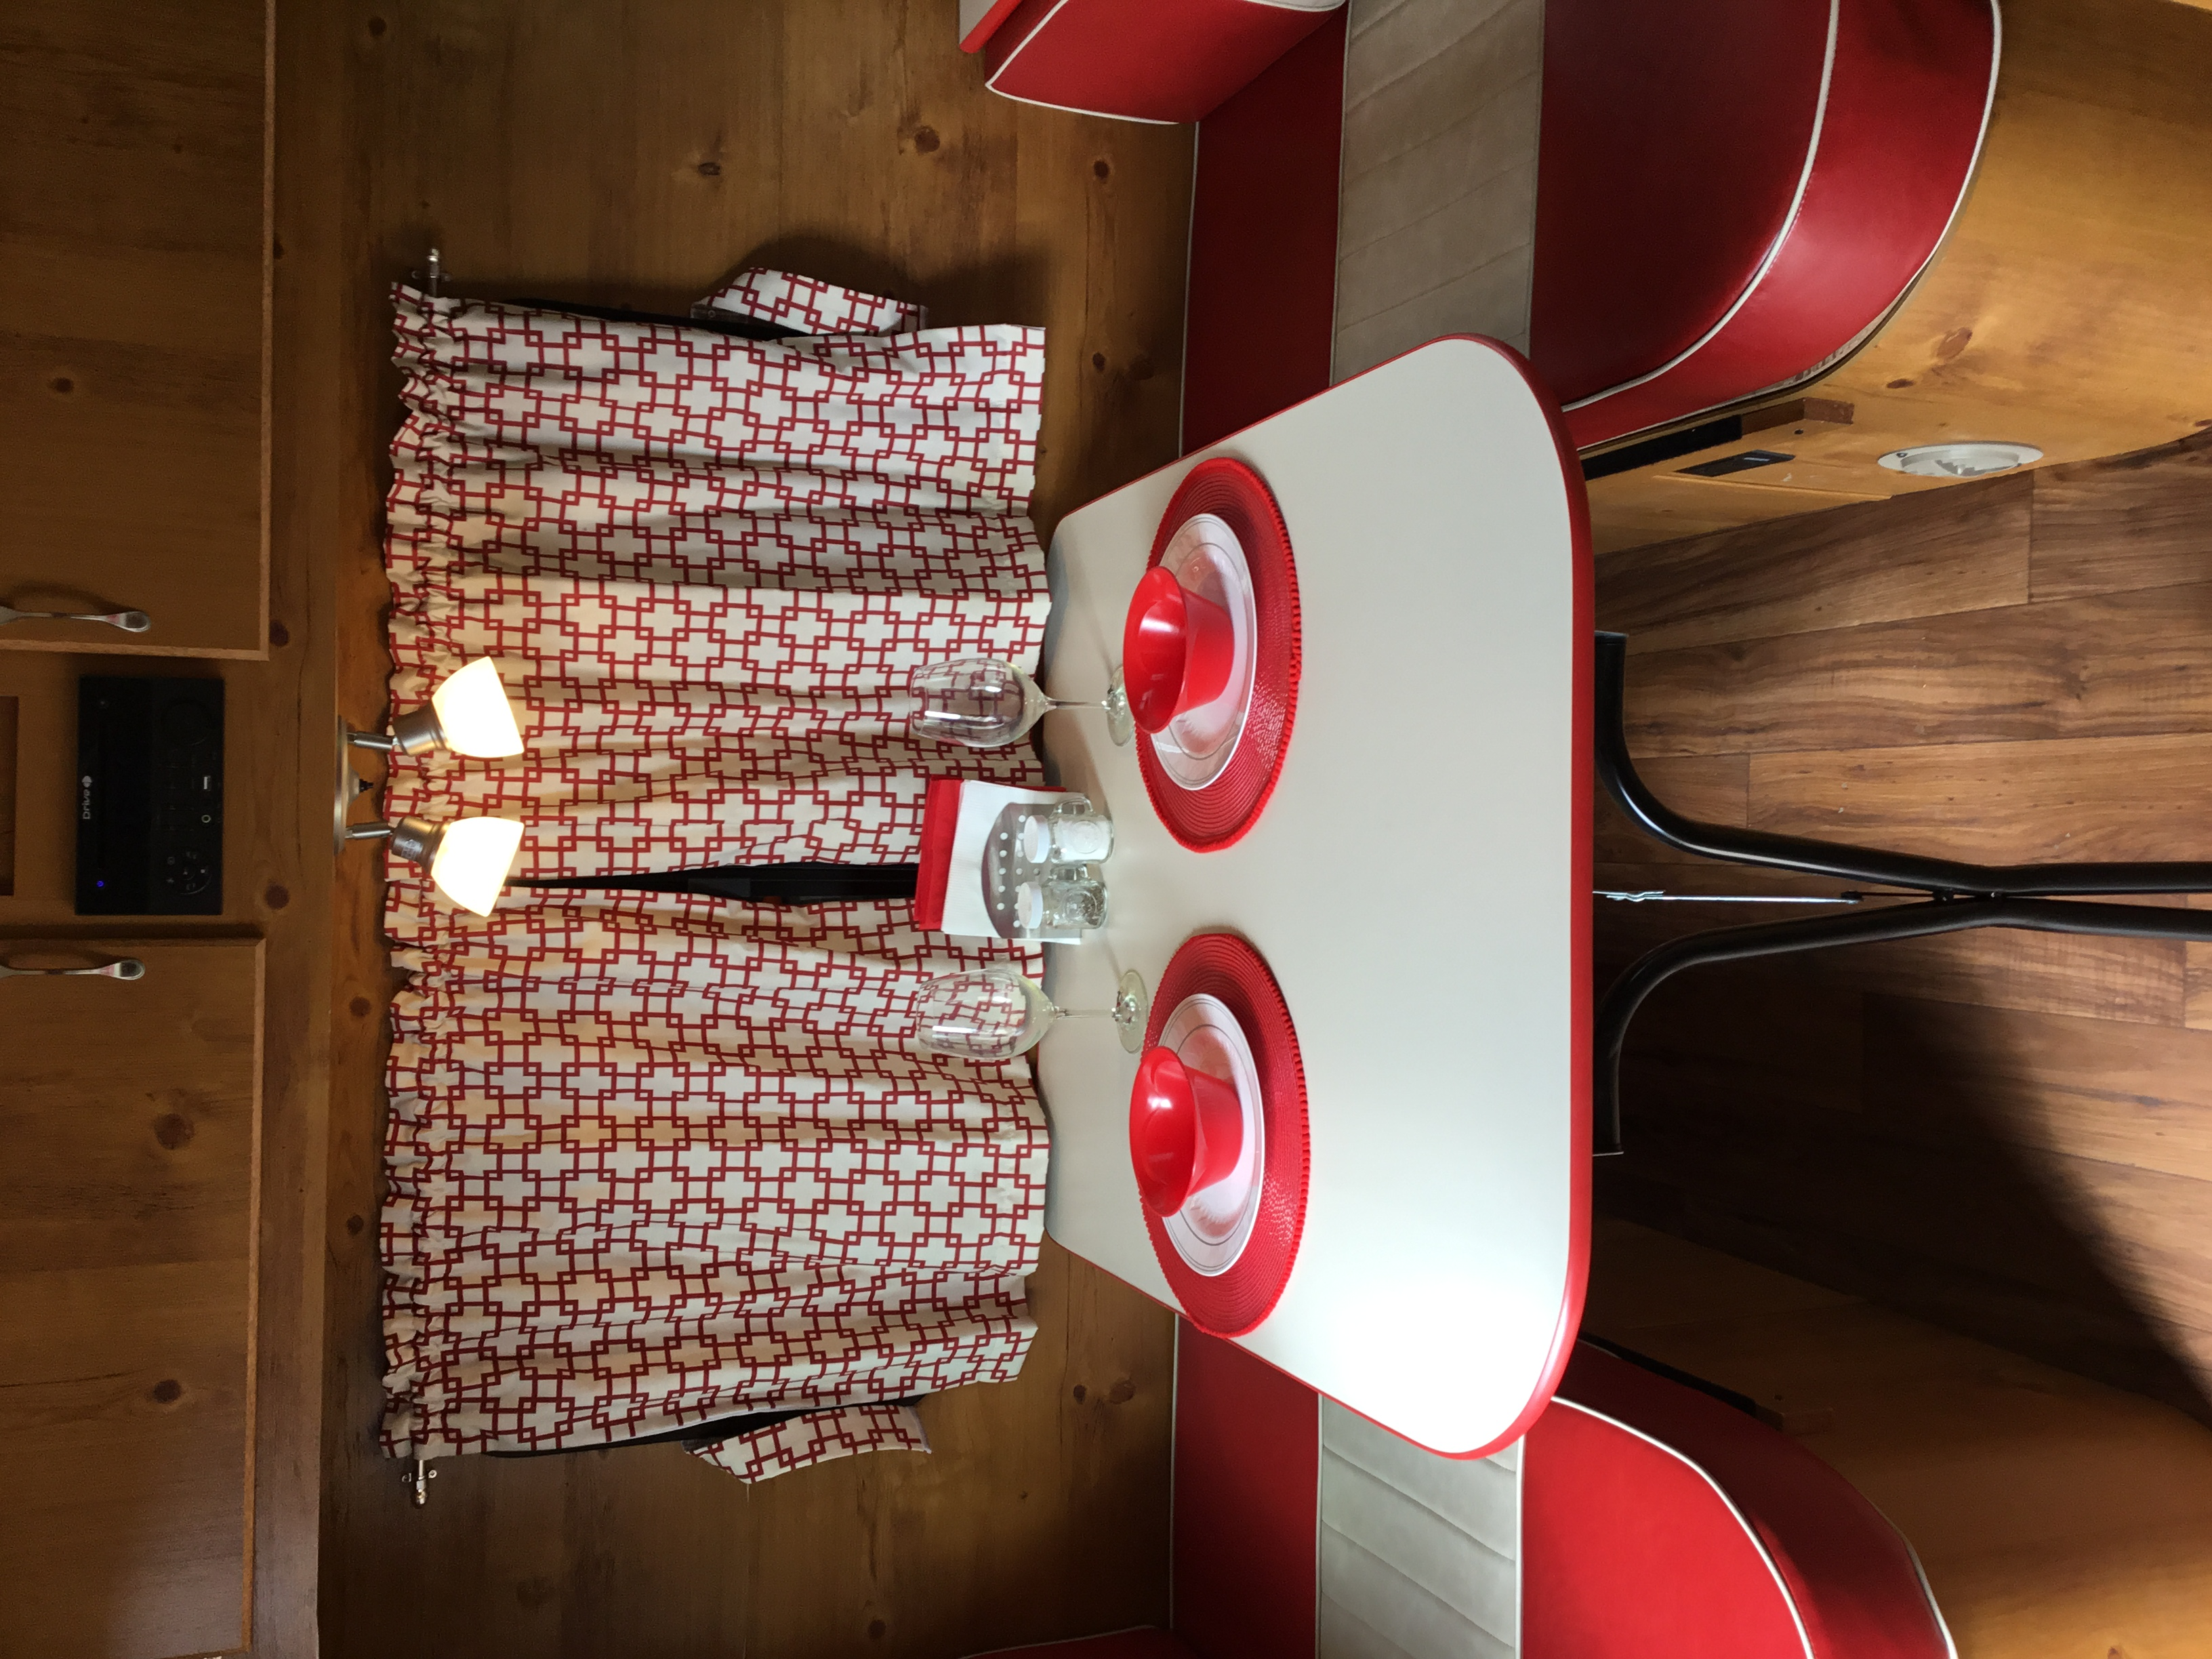 50's diner look converts to bed. Gulf Stream Vintage Cruiser 2020